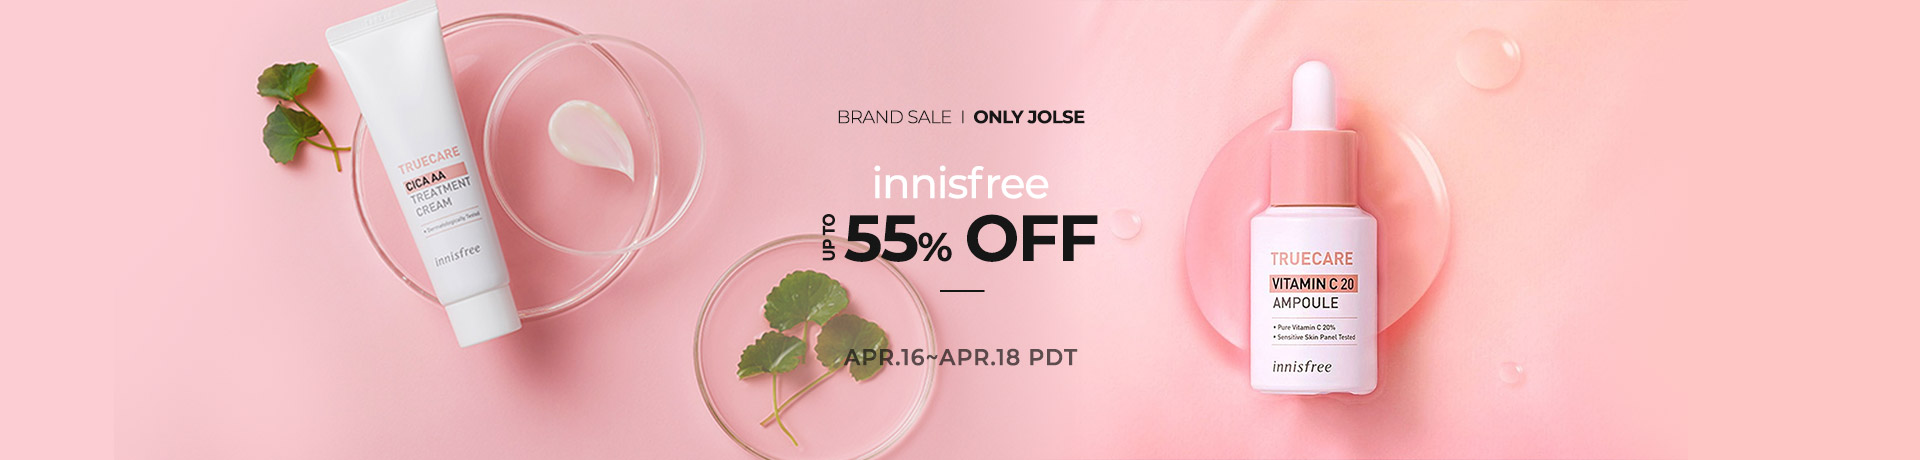 innisfree Up to 55% OFF